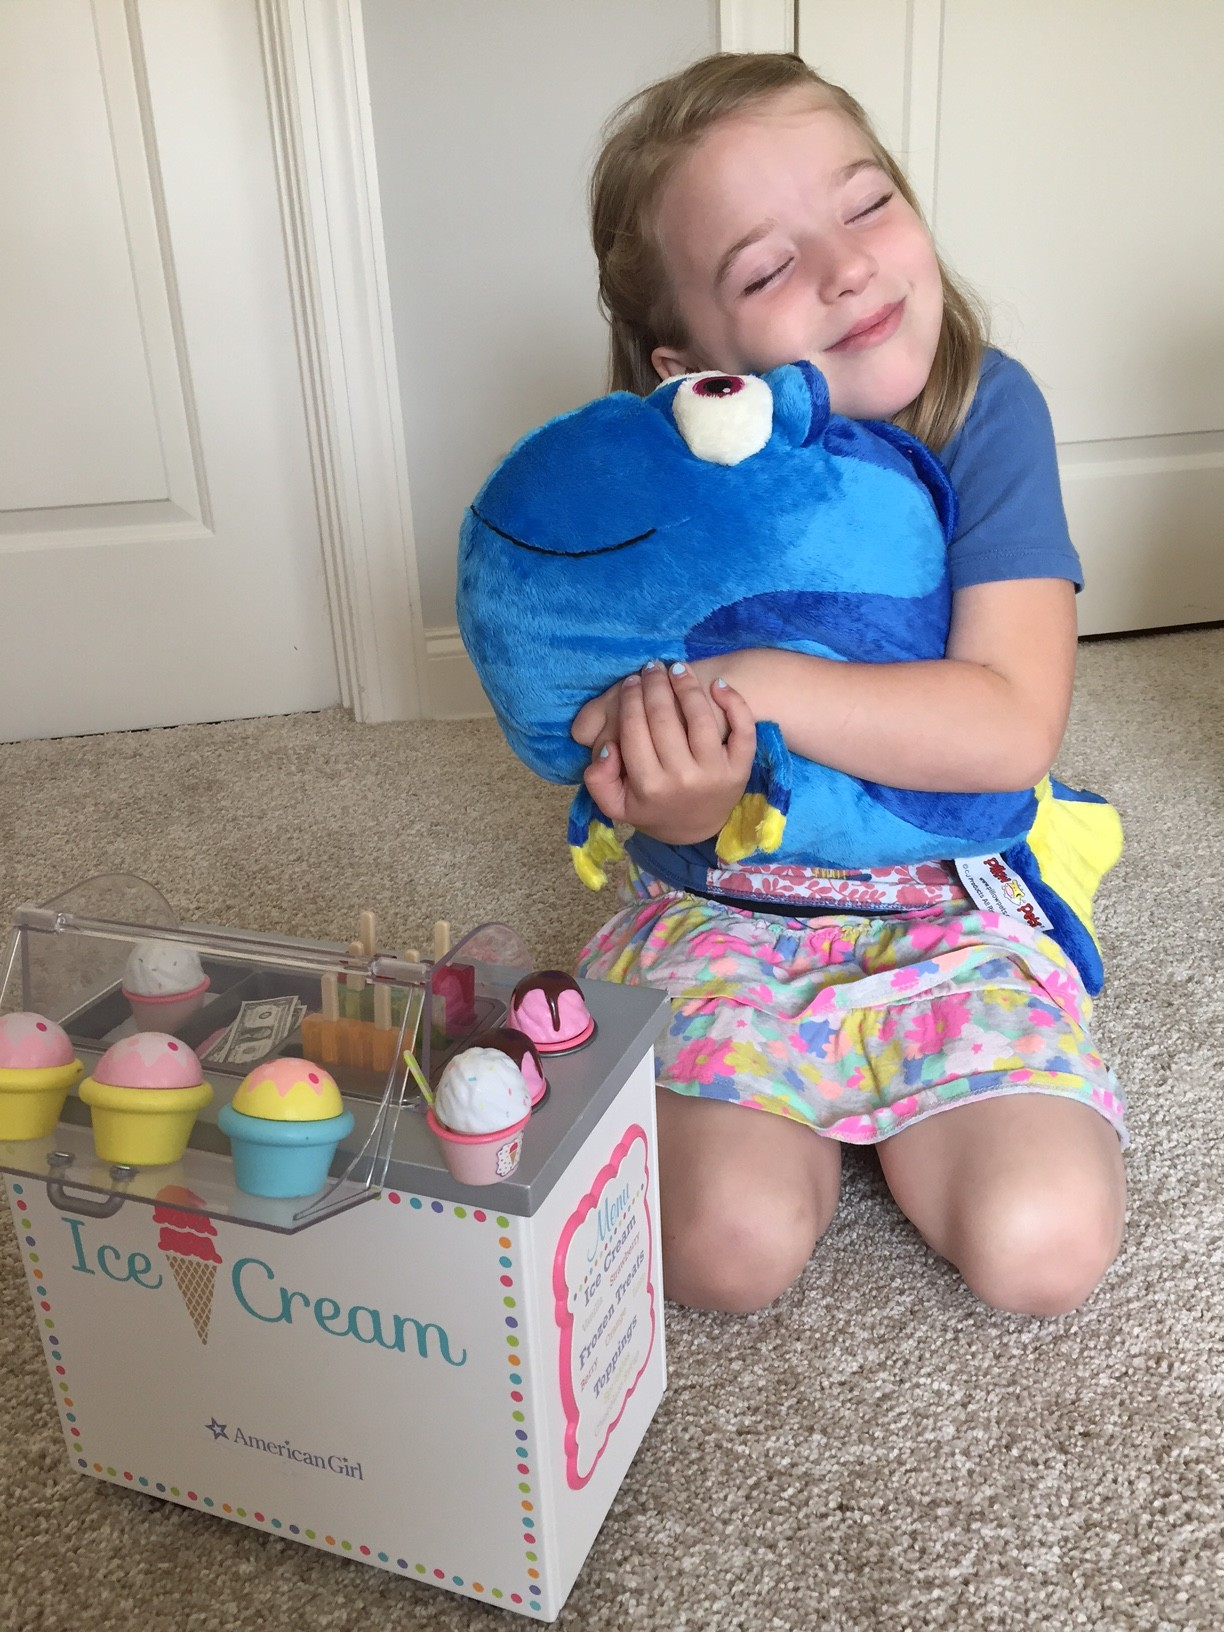 #DisneyKids Flash Playdate. Girl with stuffed Dory character.